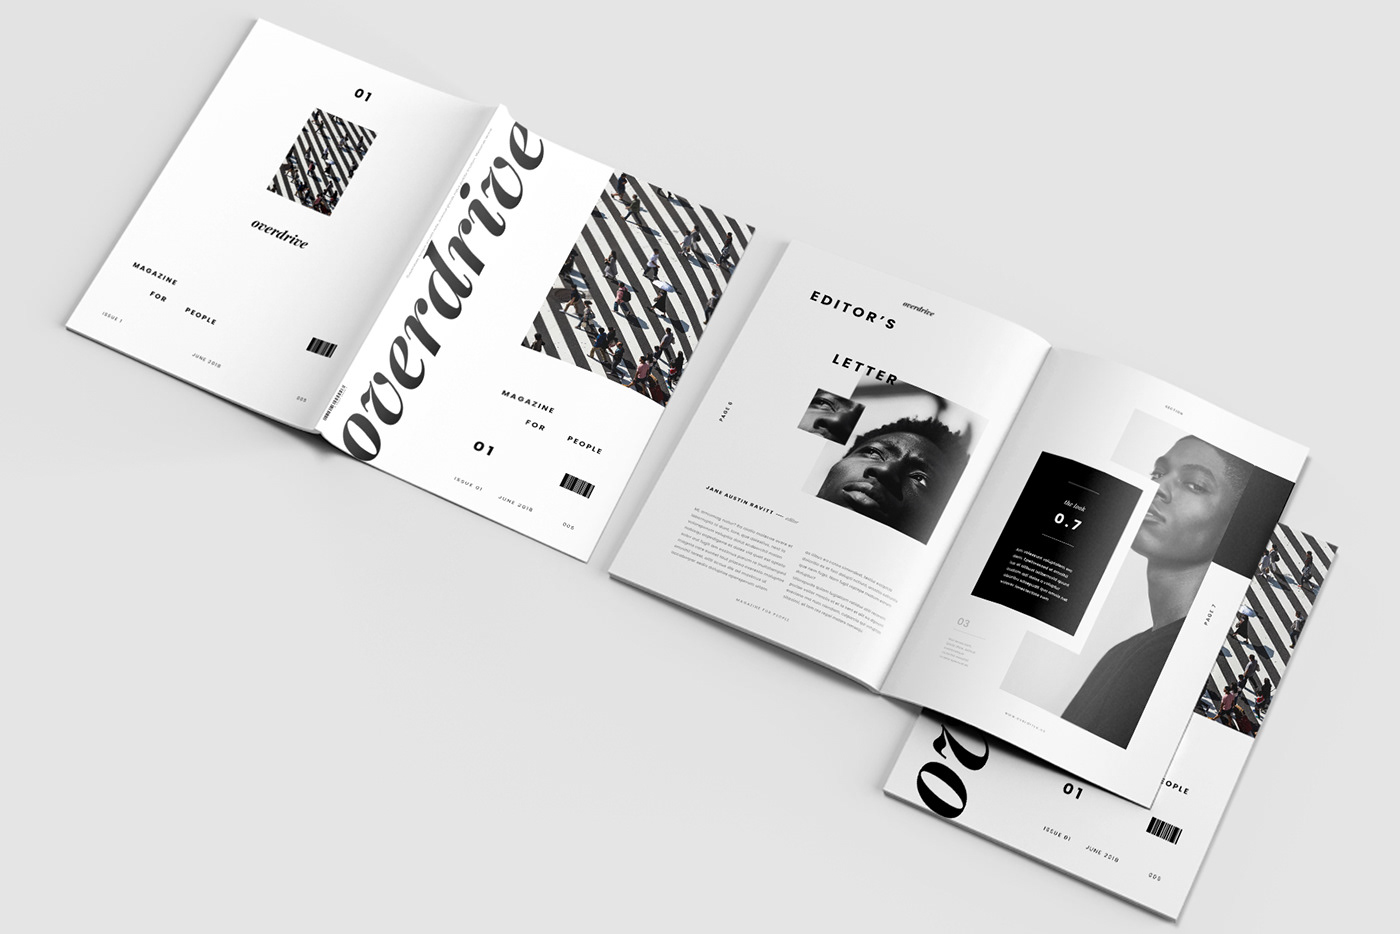 Overdrive Magazine On Behance